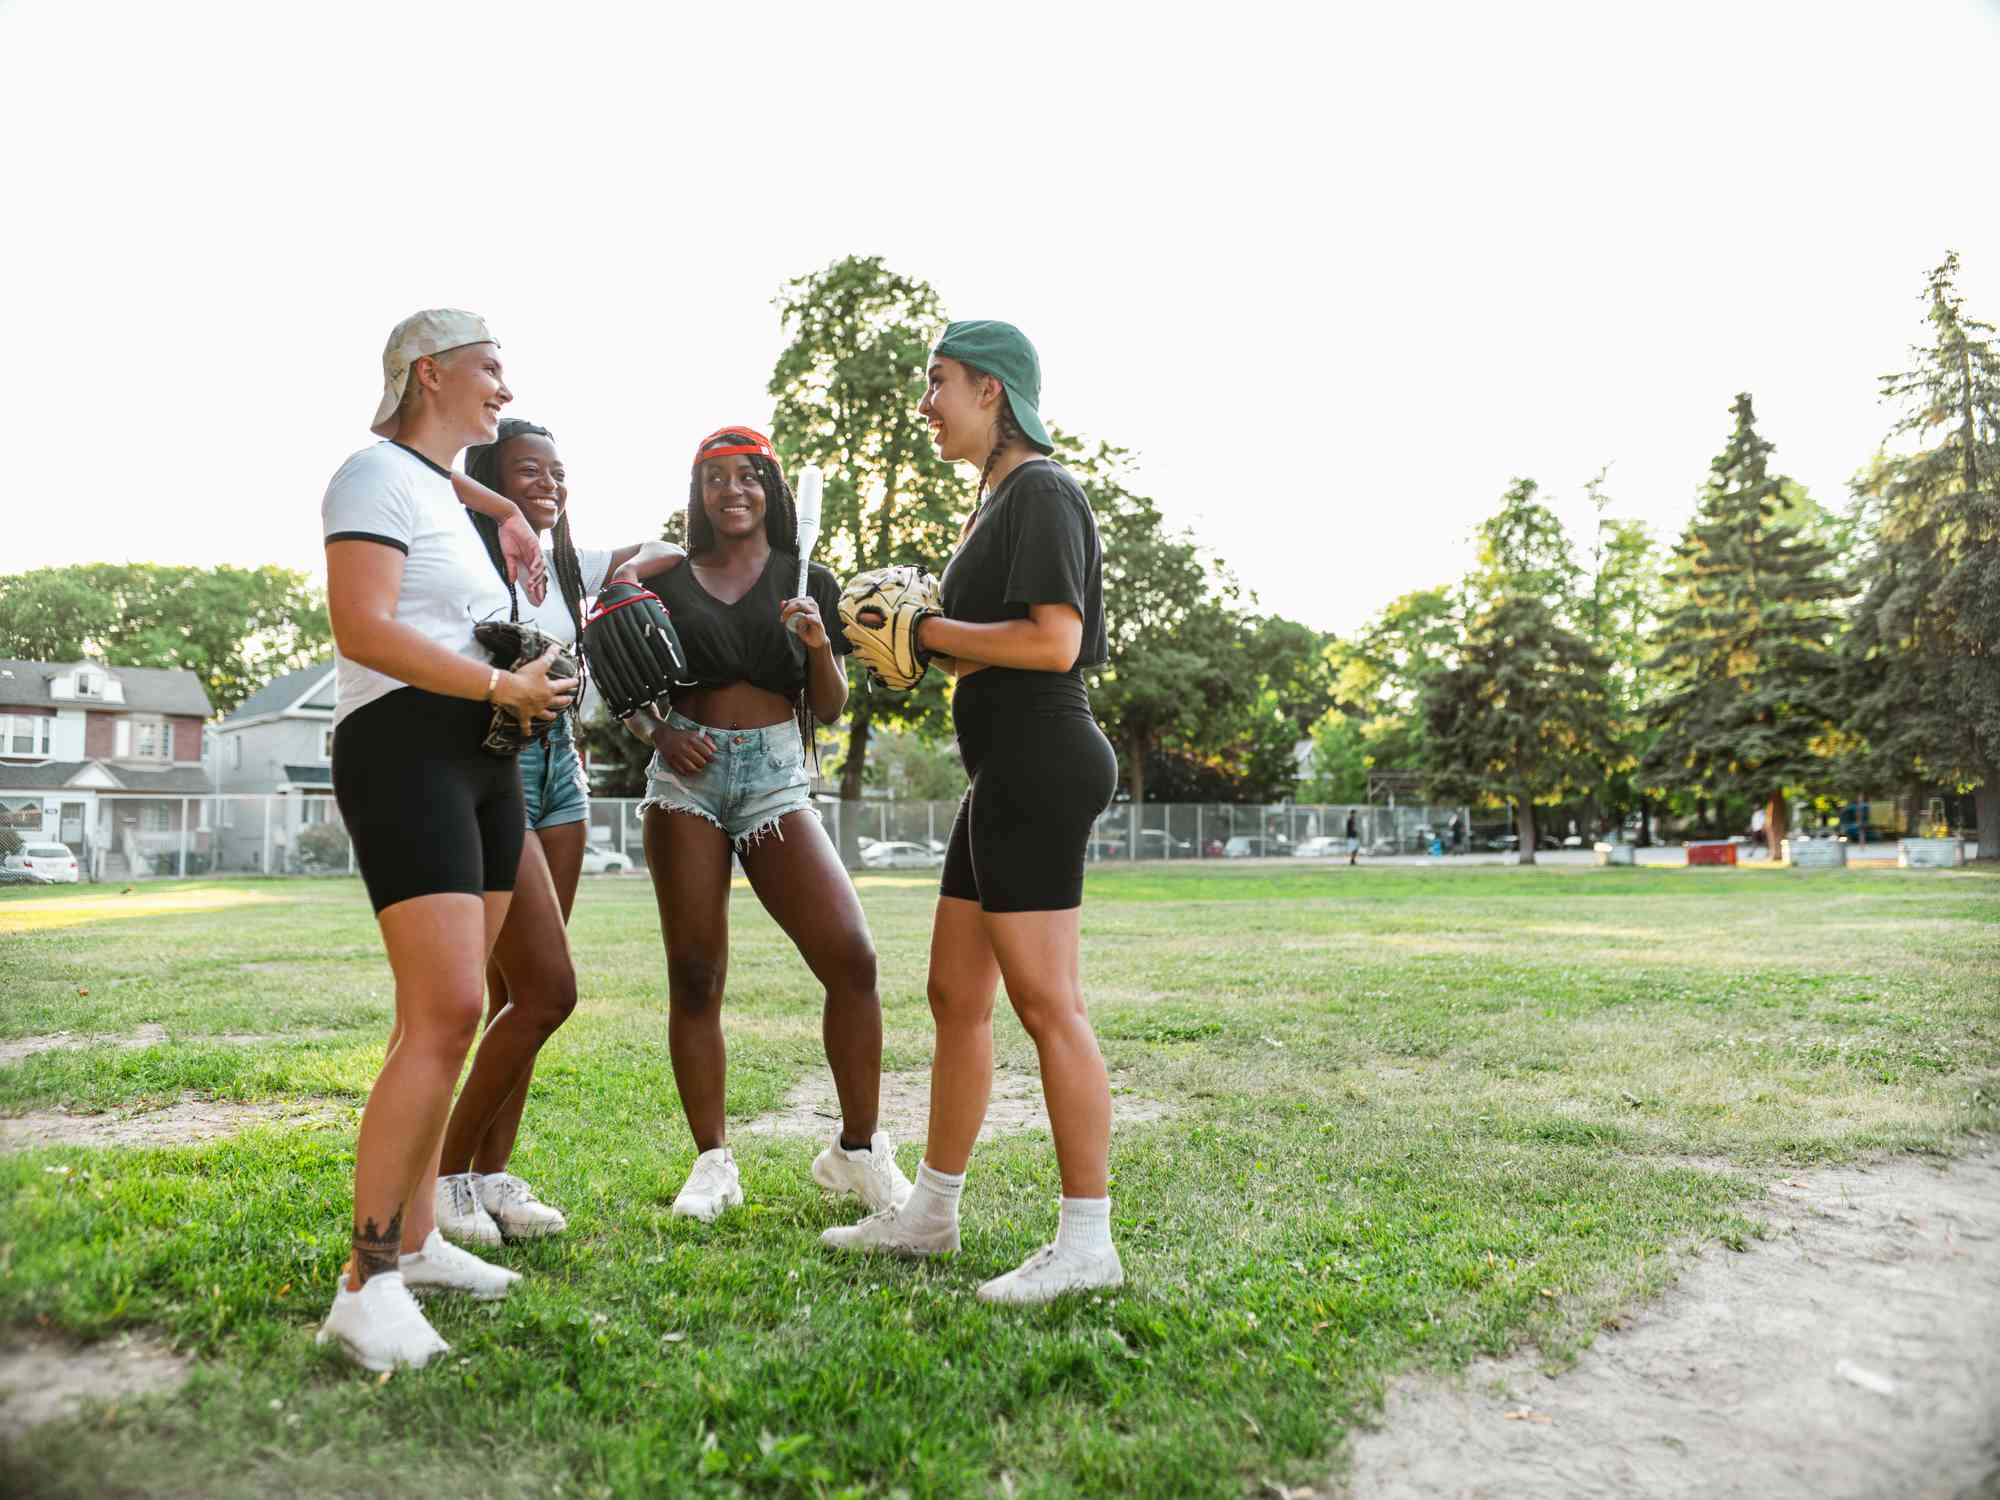 Young women gather together, taking break from playing softball